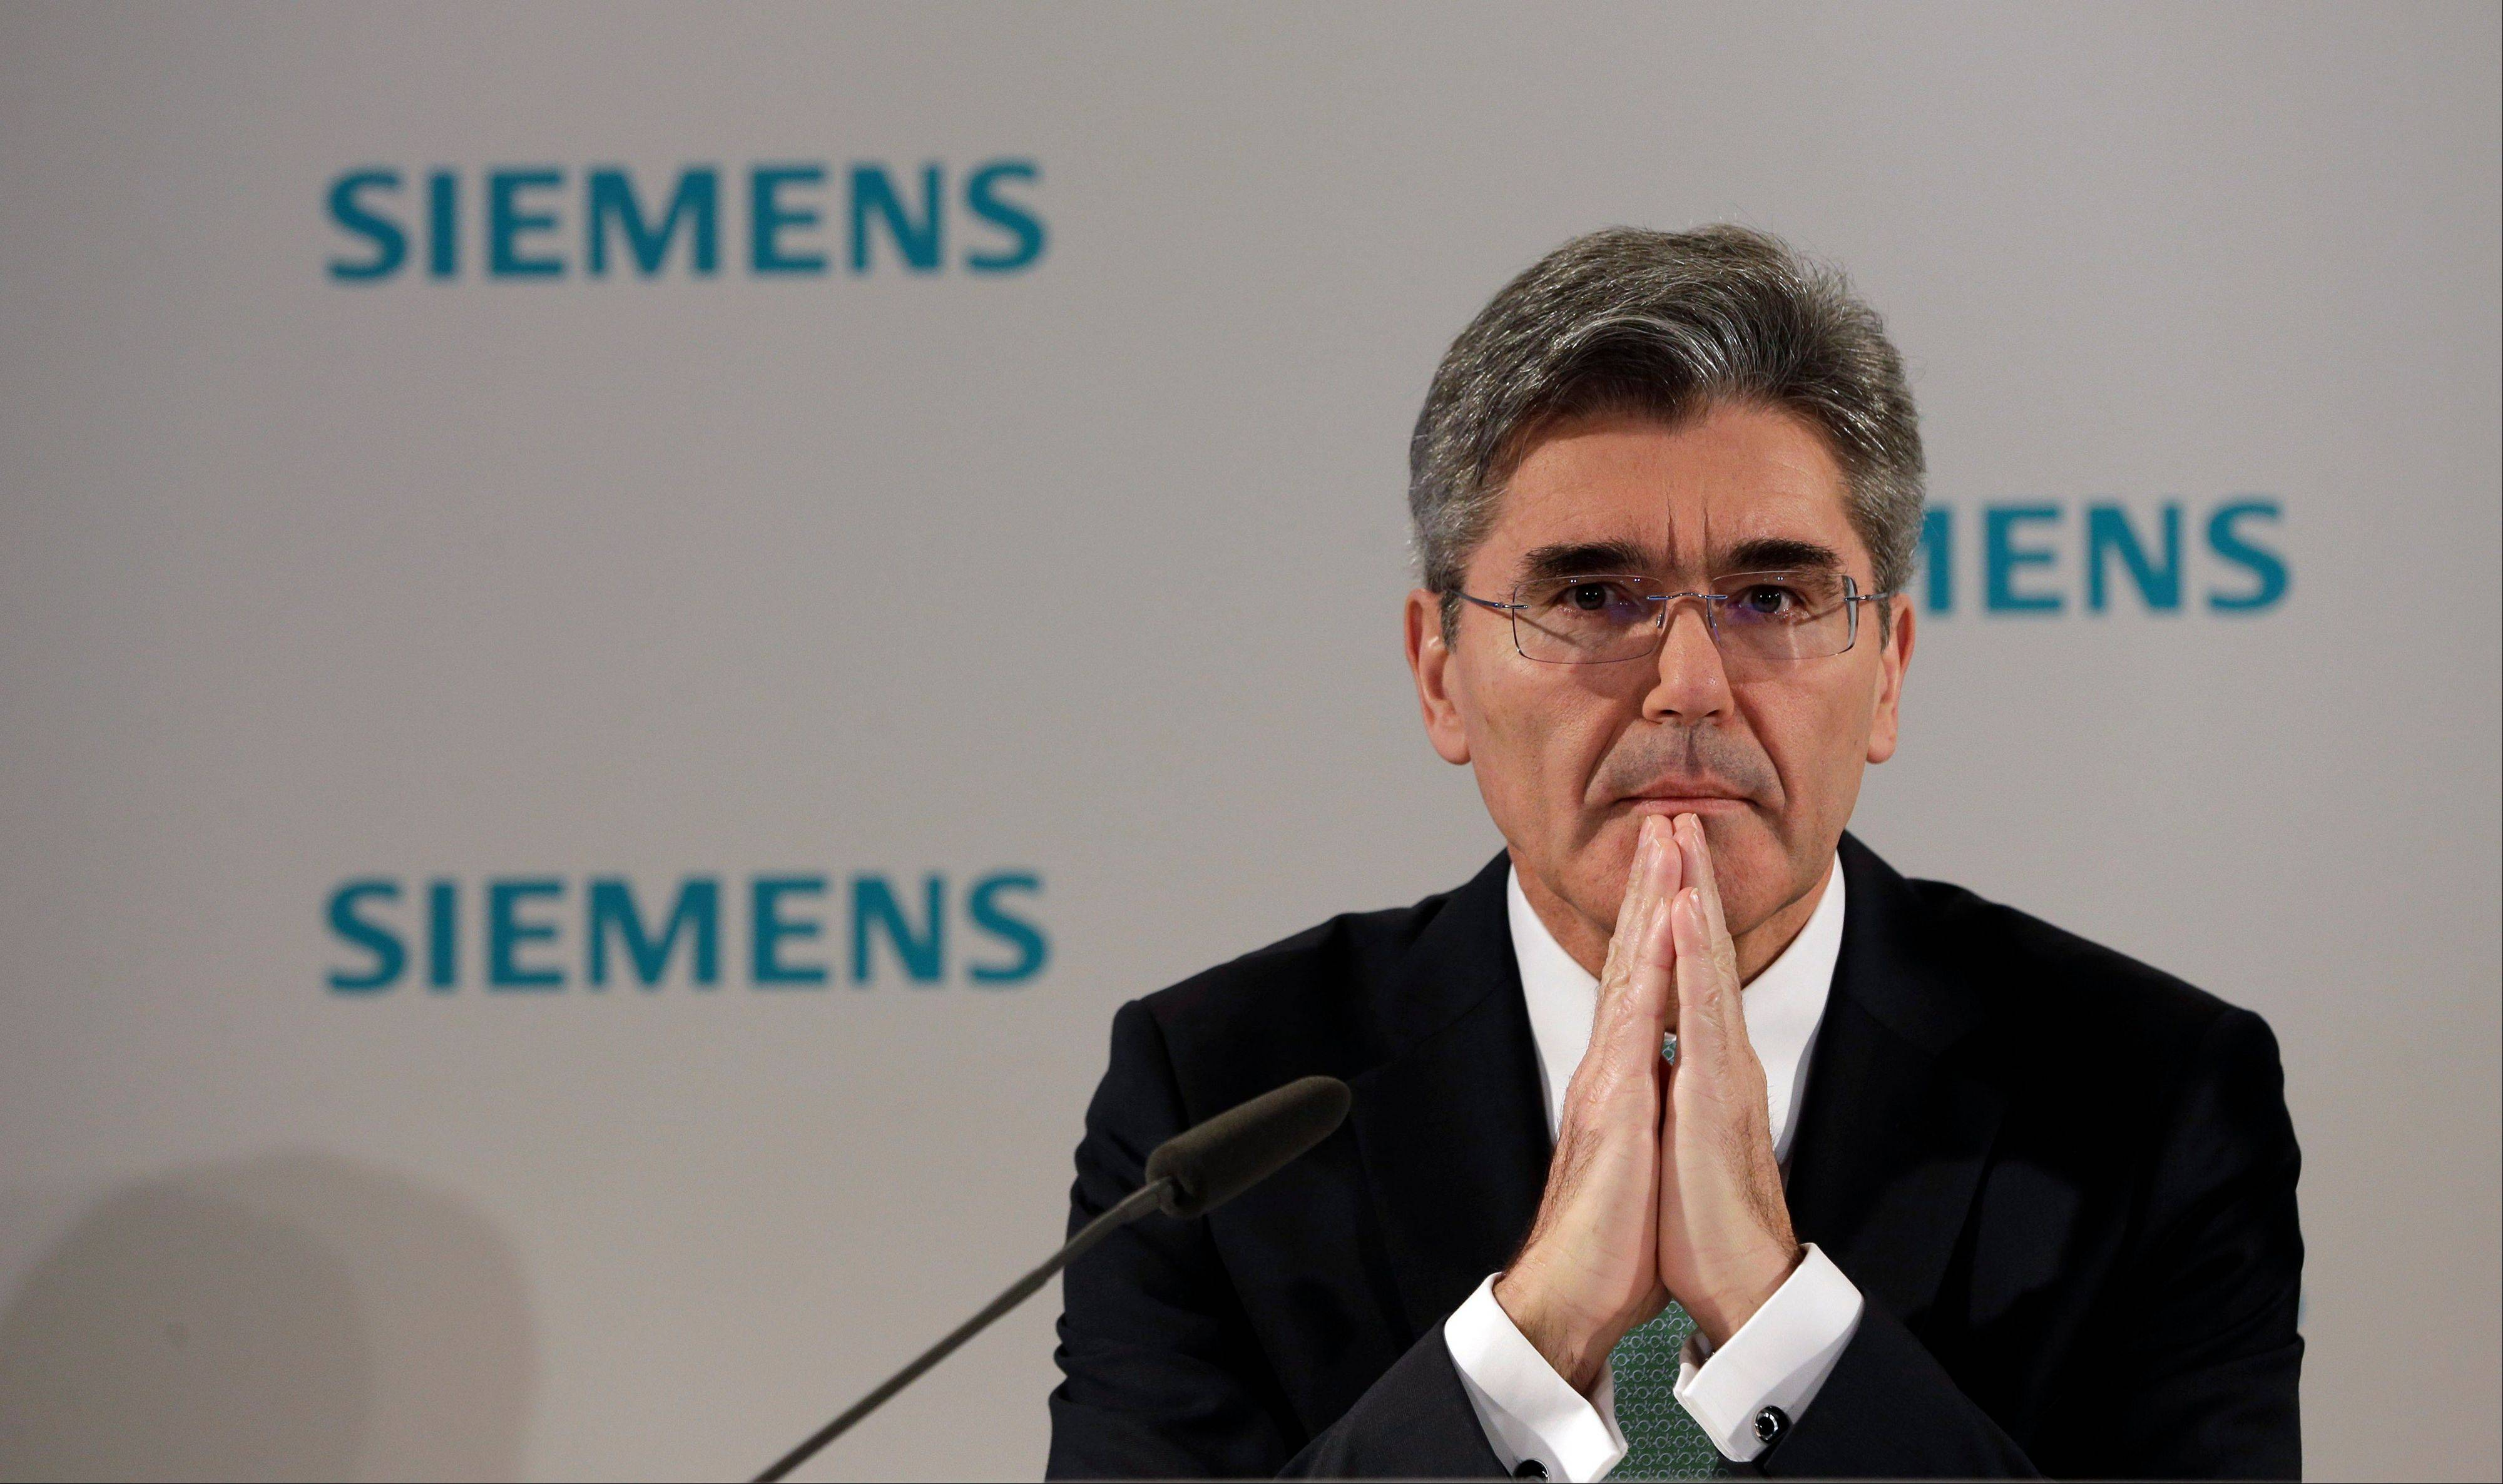 Joe Kaeser, CFO of German industrial conglomerate Siemens, gestures during a news conference prior to the annual shareholder meeting in Munich, southern Germany Wednesday.